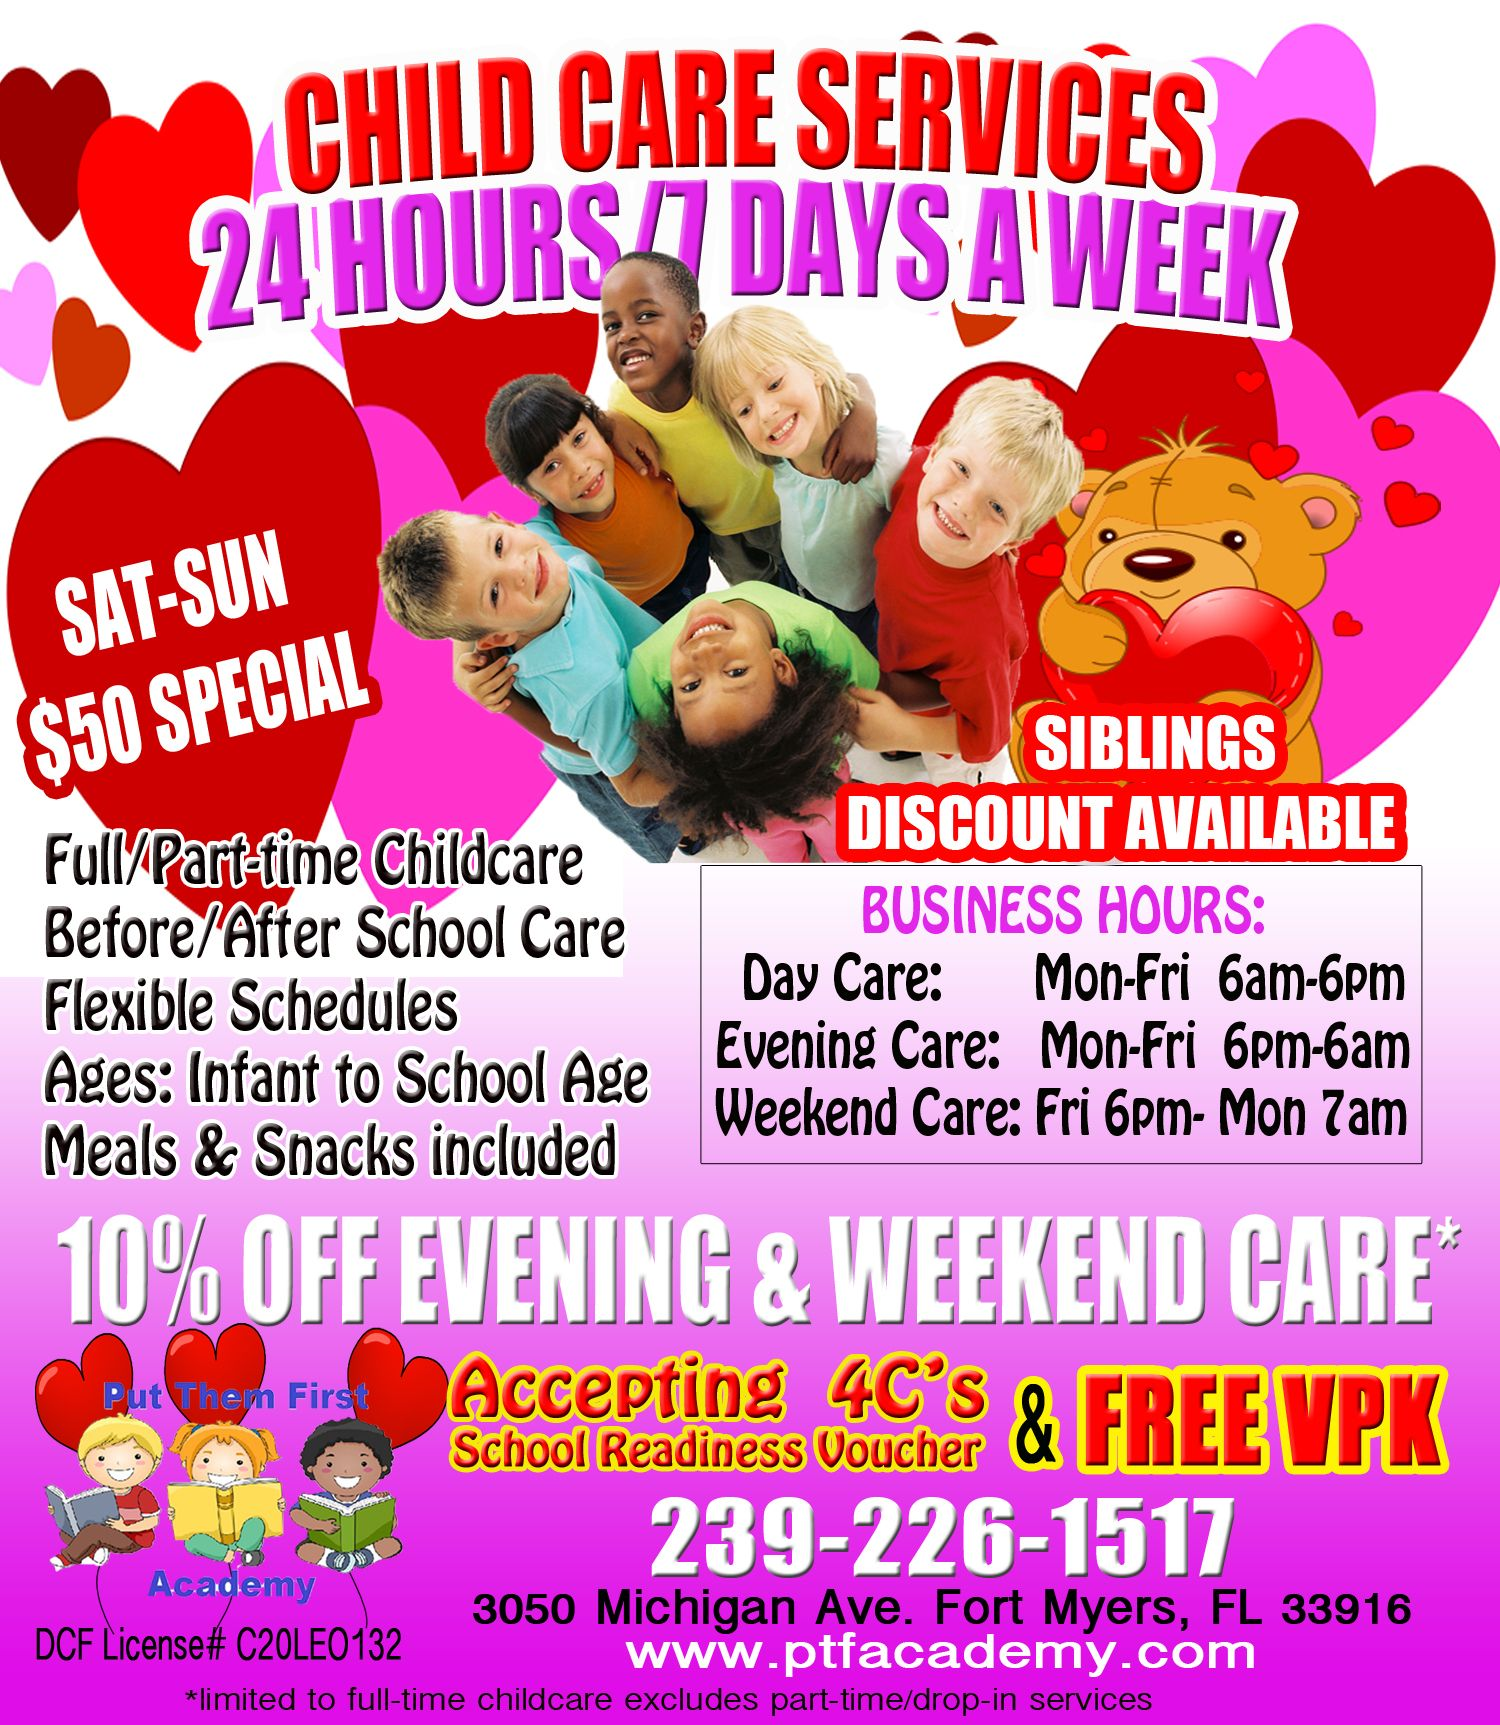 Creative Childcare Ads Childcare Child Care Services After School Care